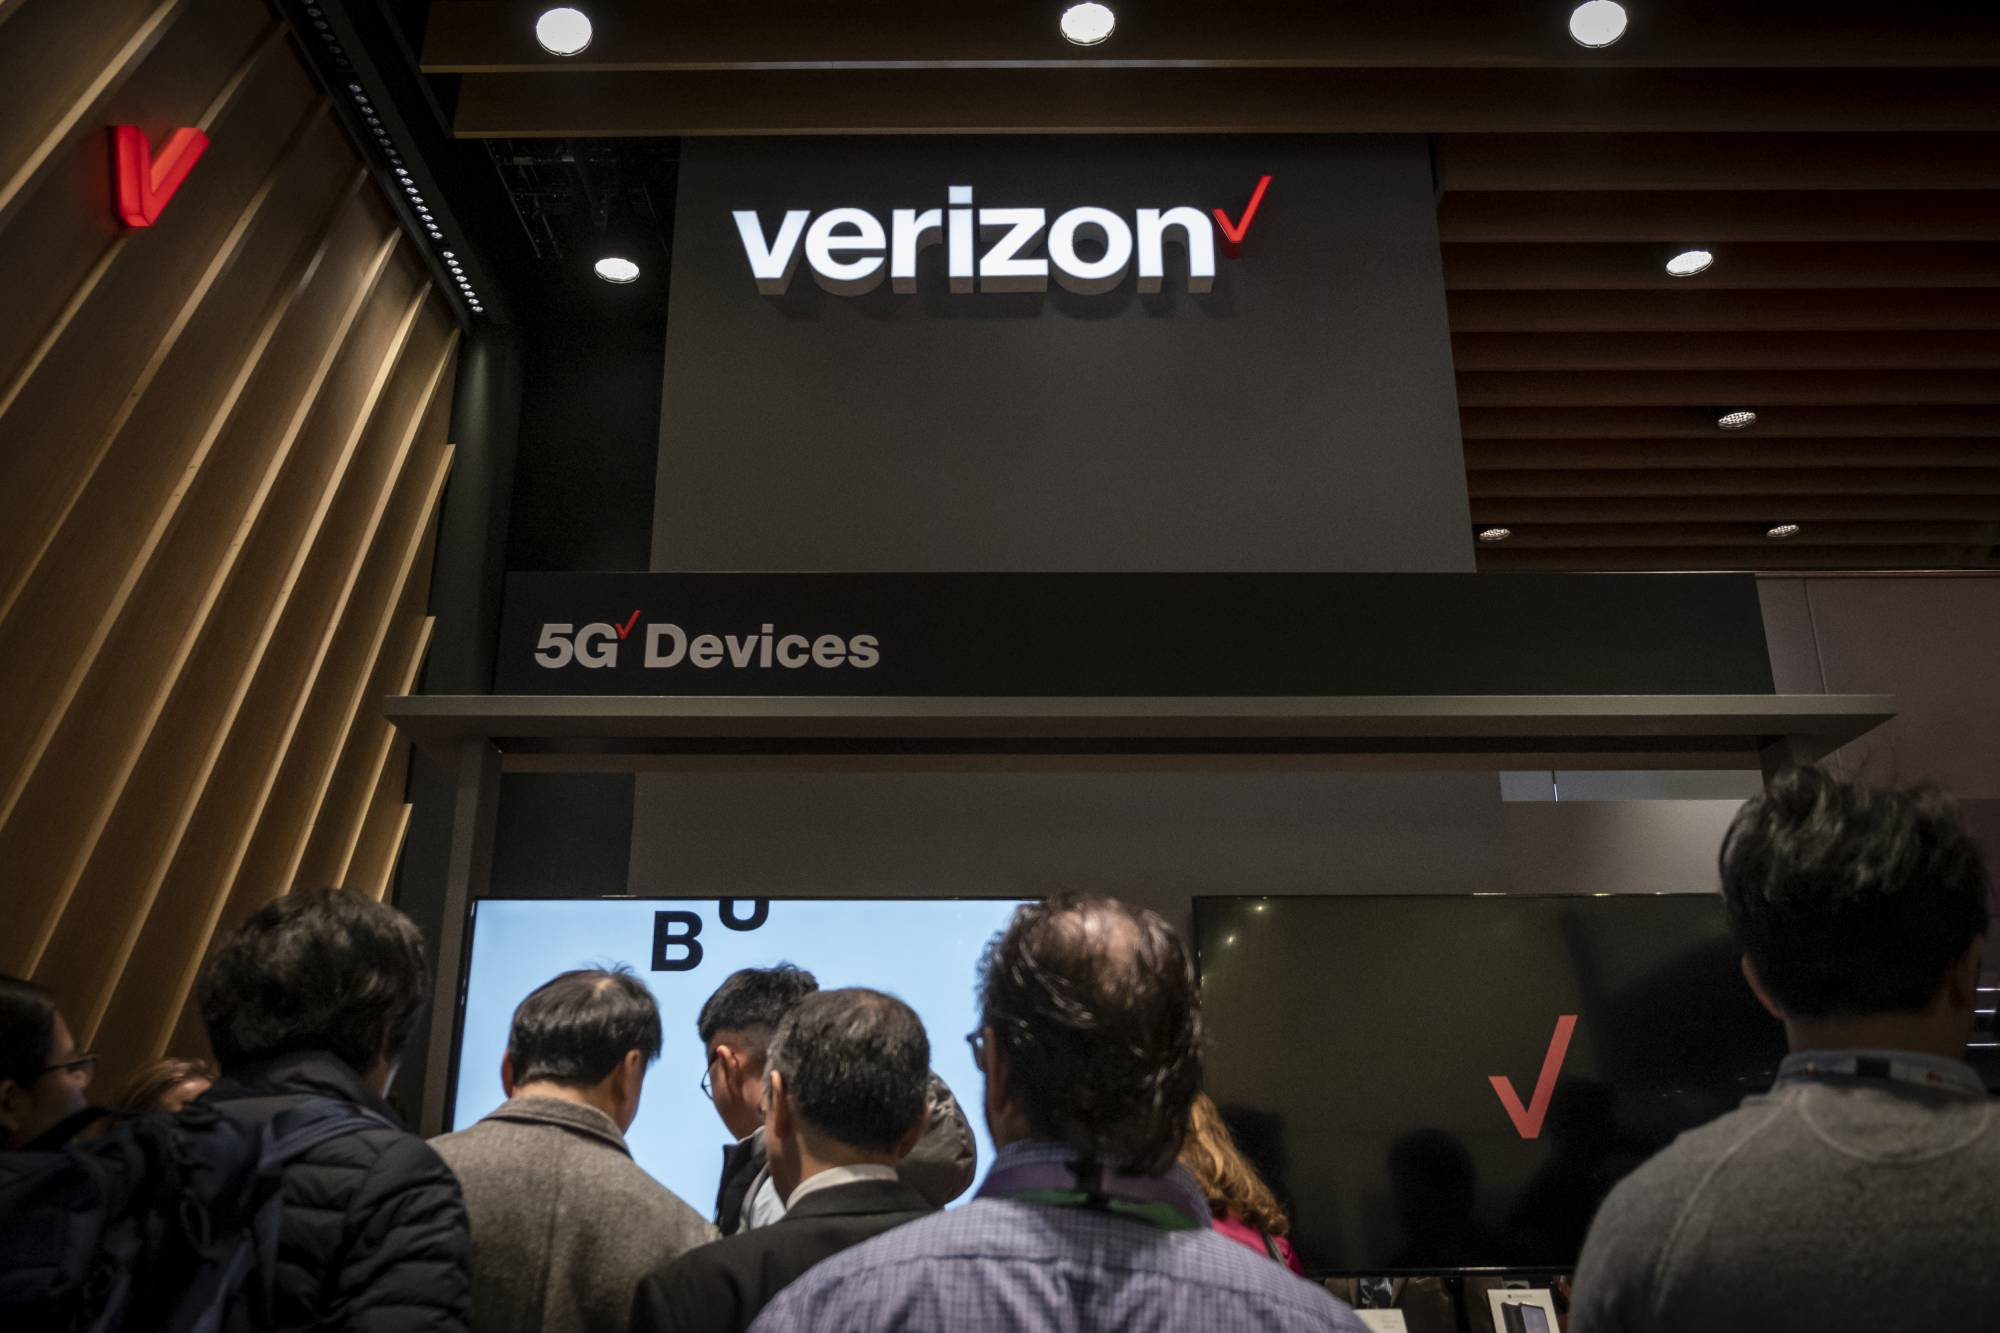 The Verizon logo is seen during MWC 2019.The MWC2019 Mobile